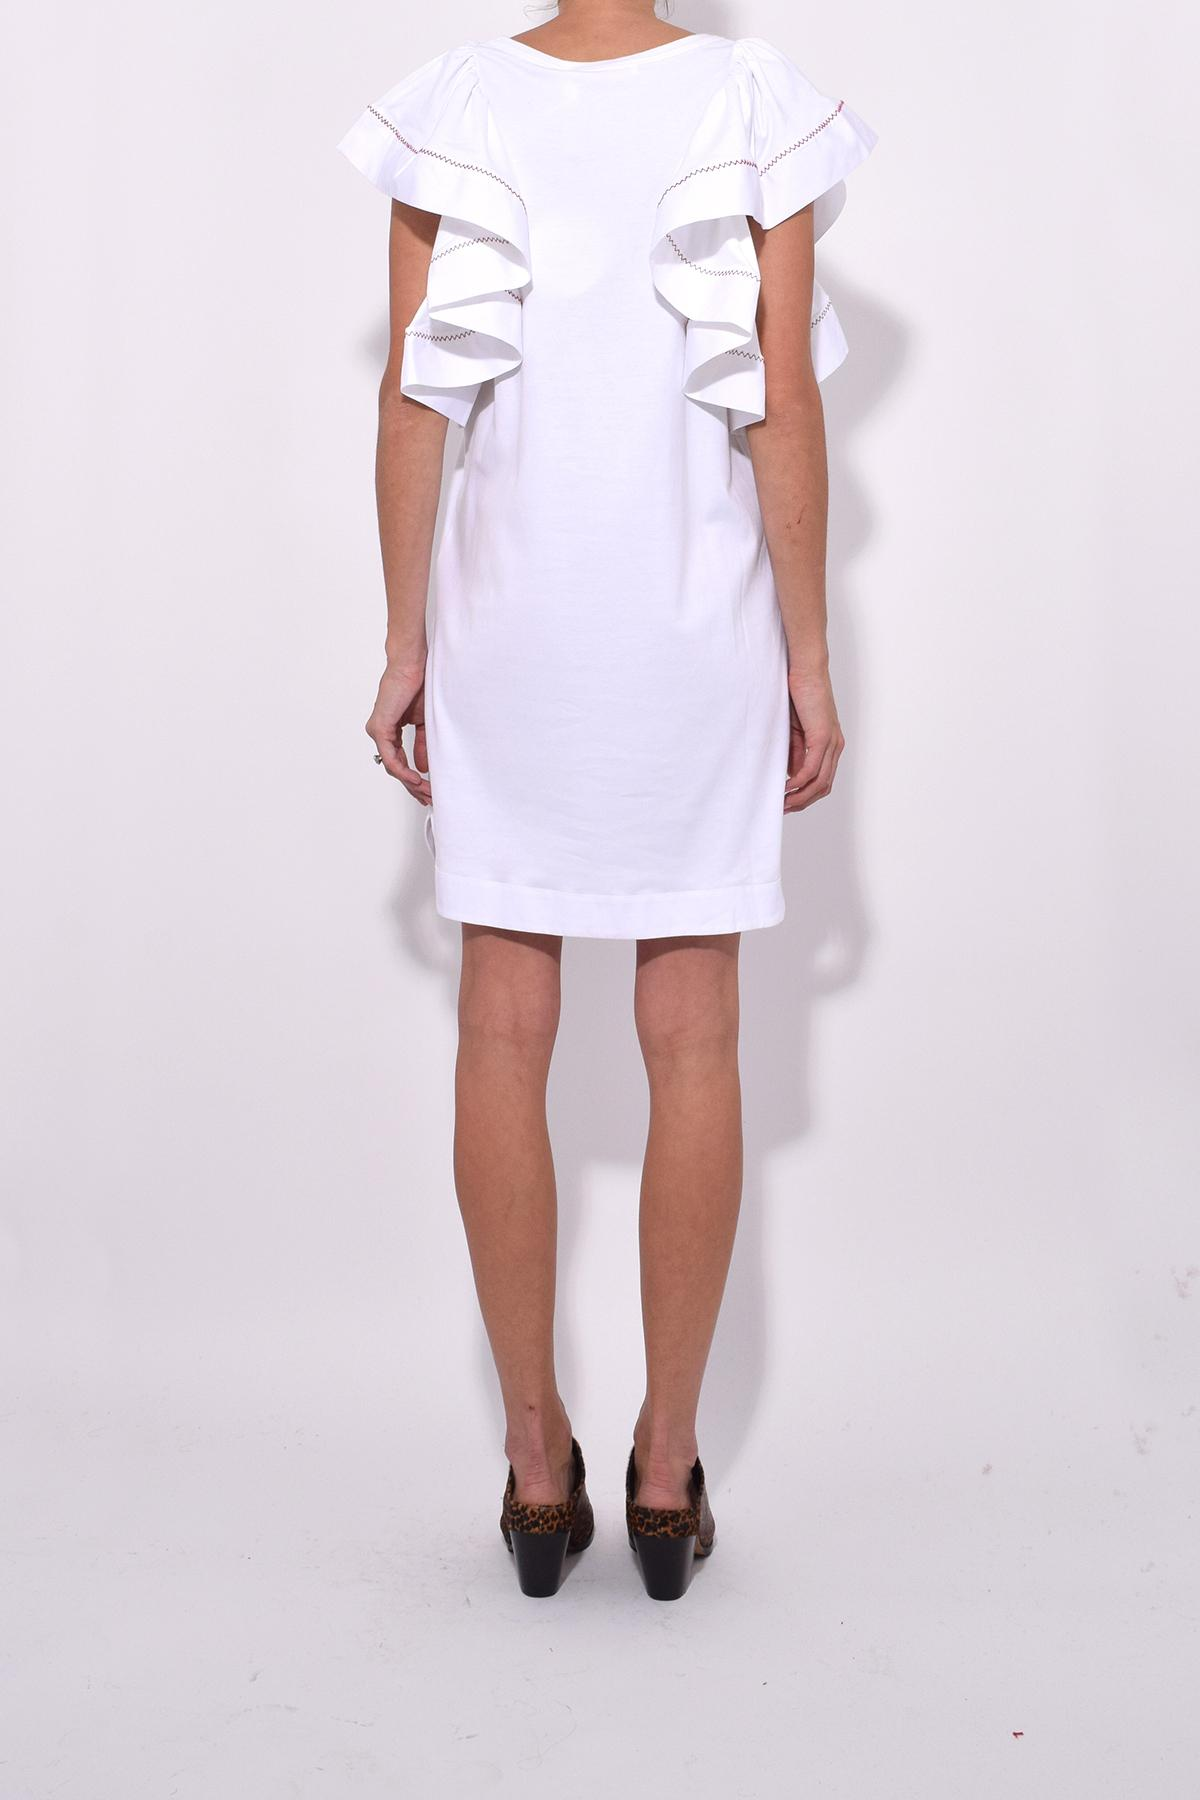 c663f959e52 Lyst - See By Chloé Flouncy Sleeve Dress In White Powder in White